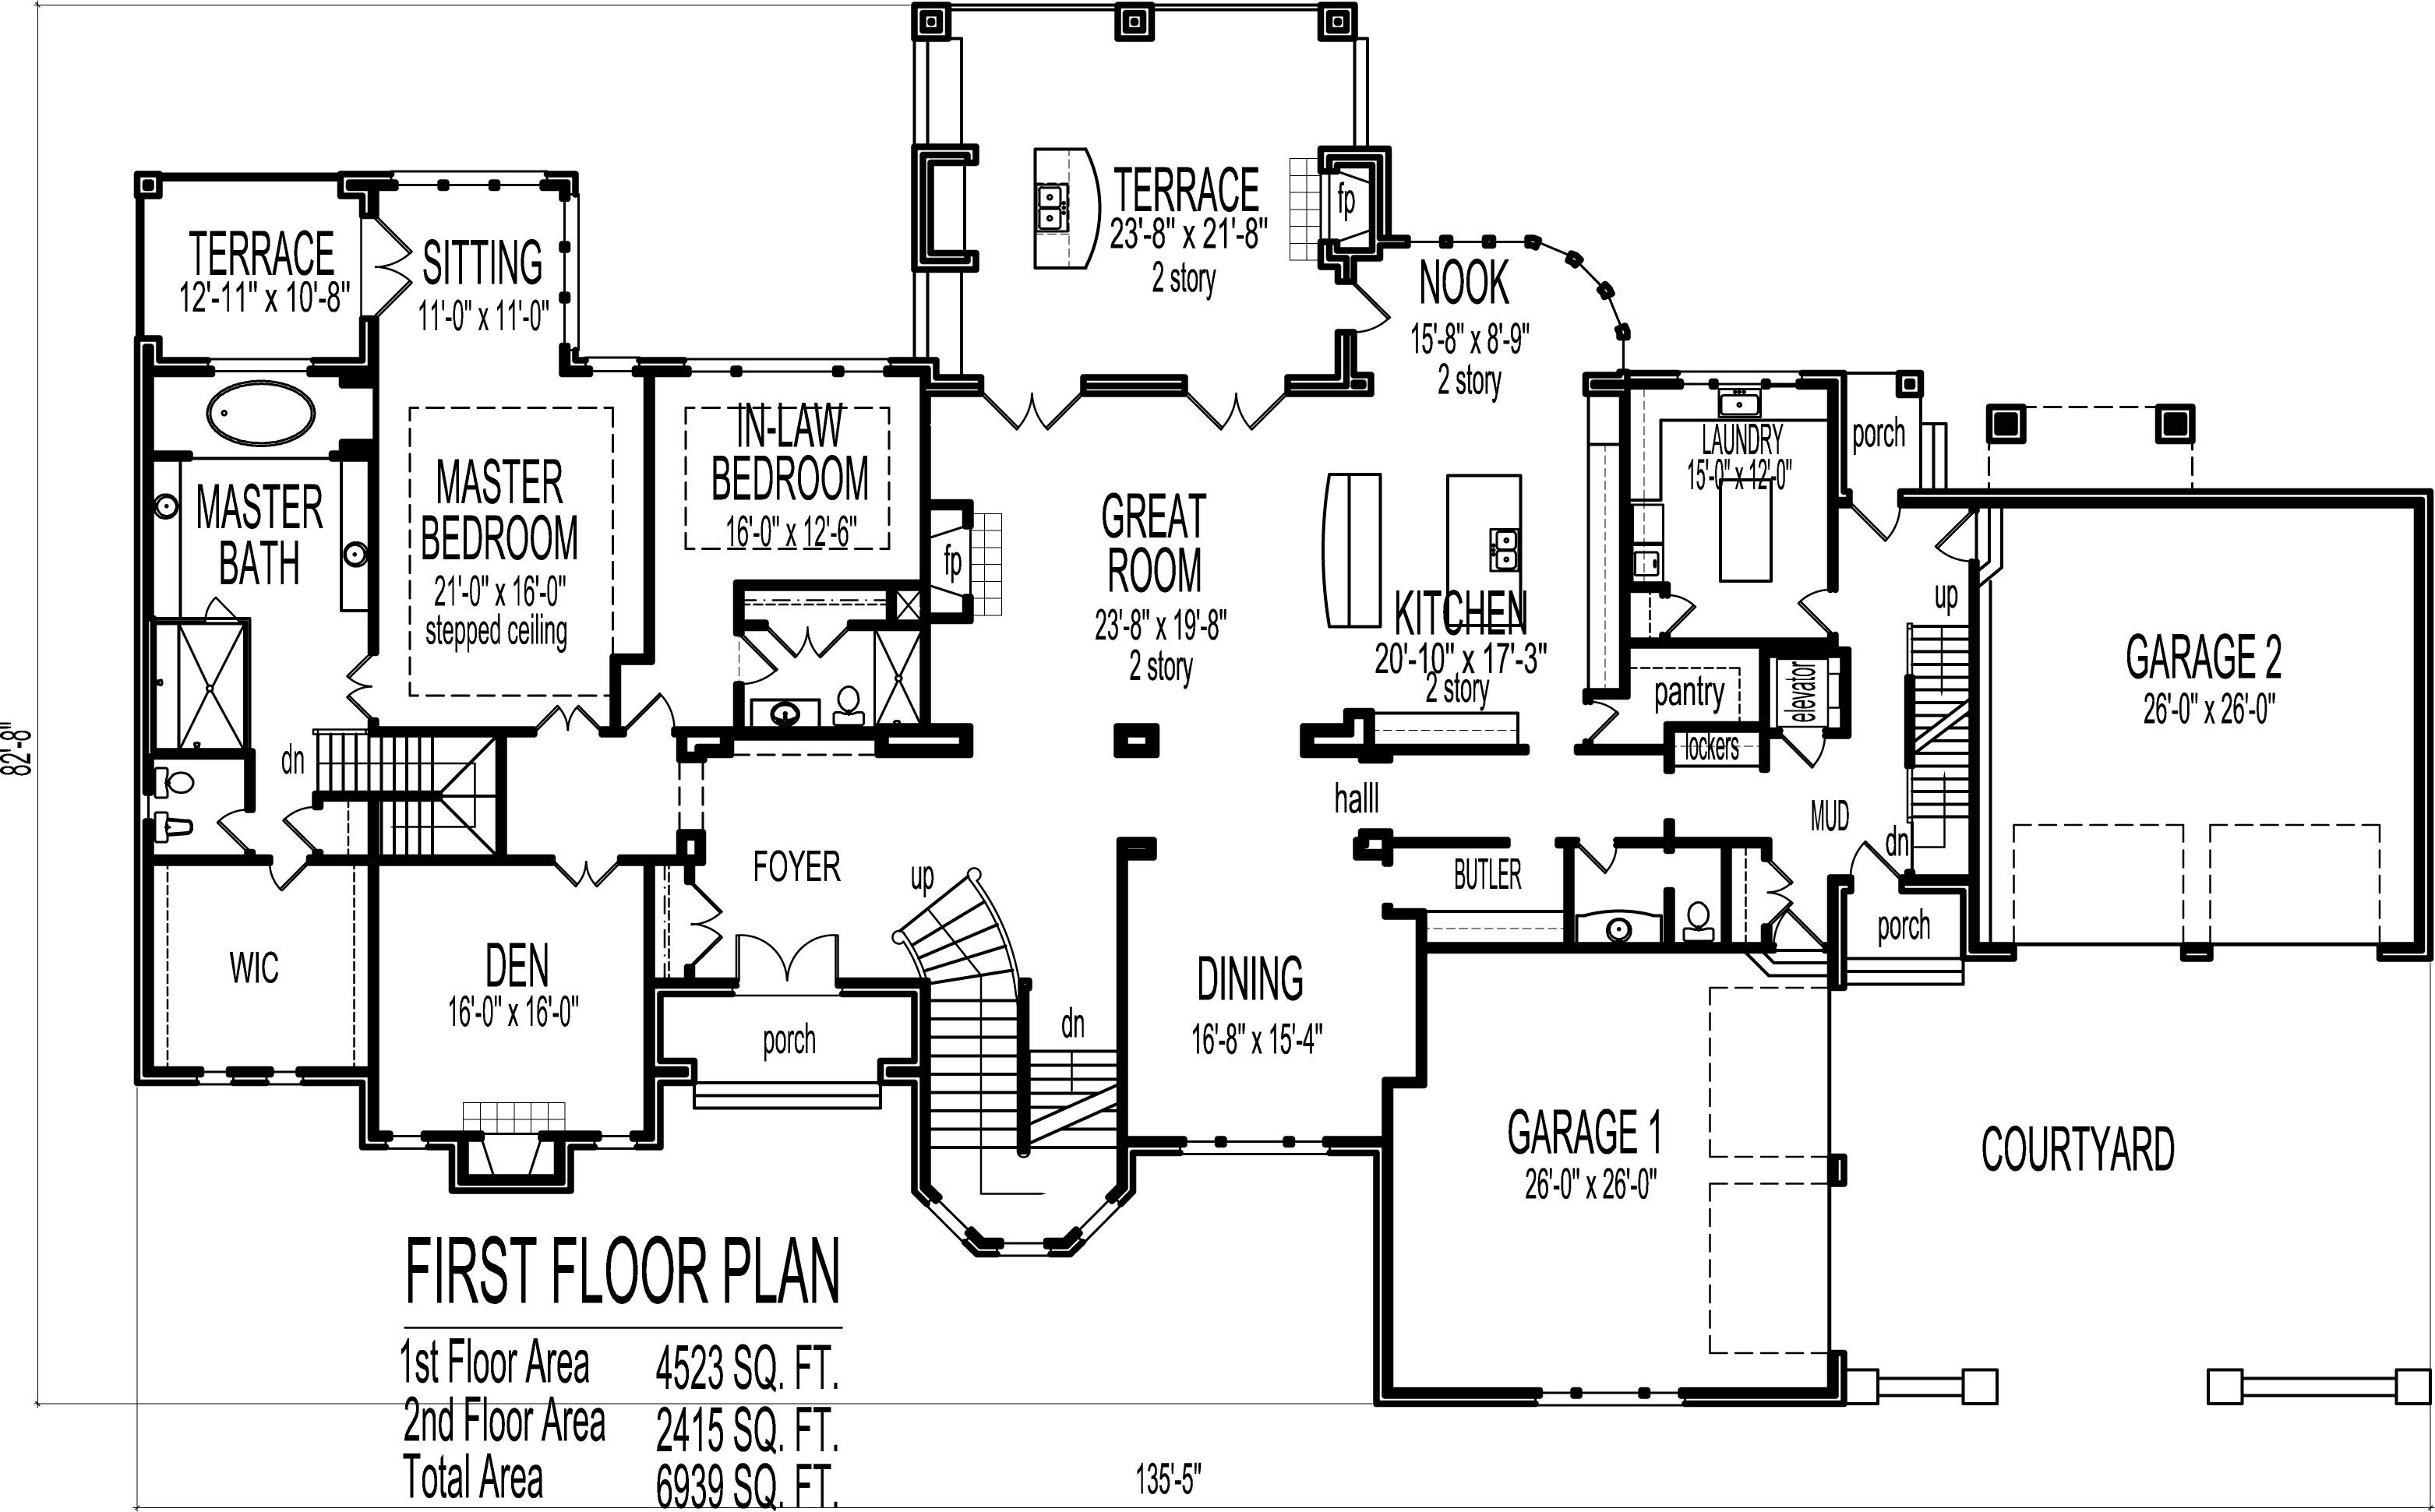 6 Bedroom 7 Bathroom Dream Home Plans Indianapolis Ft Wayne Evansville  Indiana South Bend Lafayette Bloomington Gary Hammond Indiana Muncie .